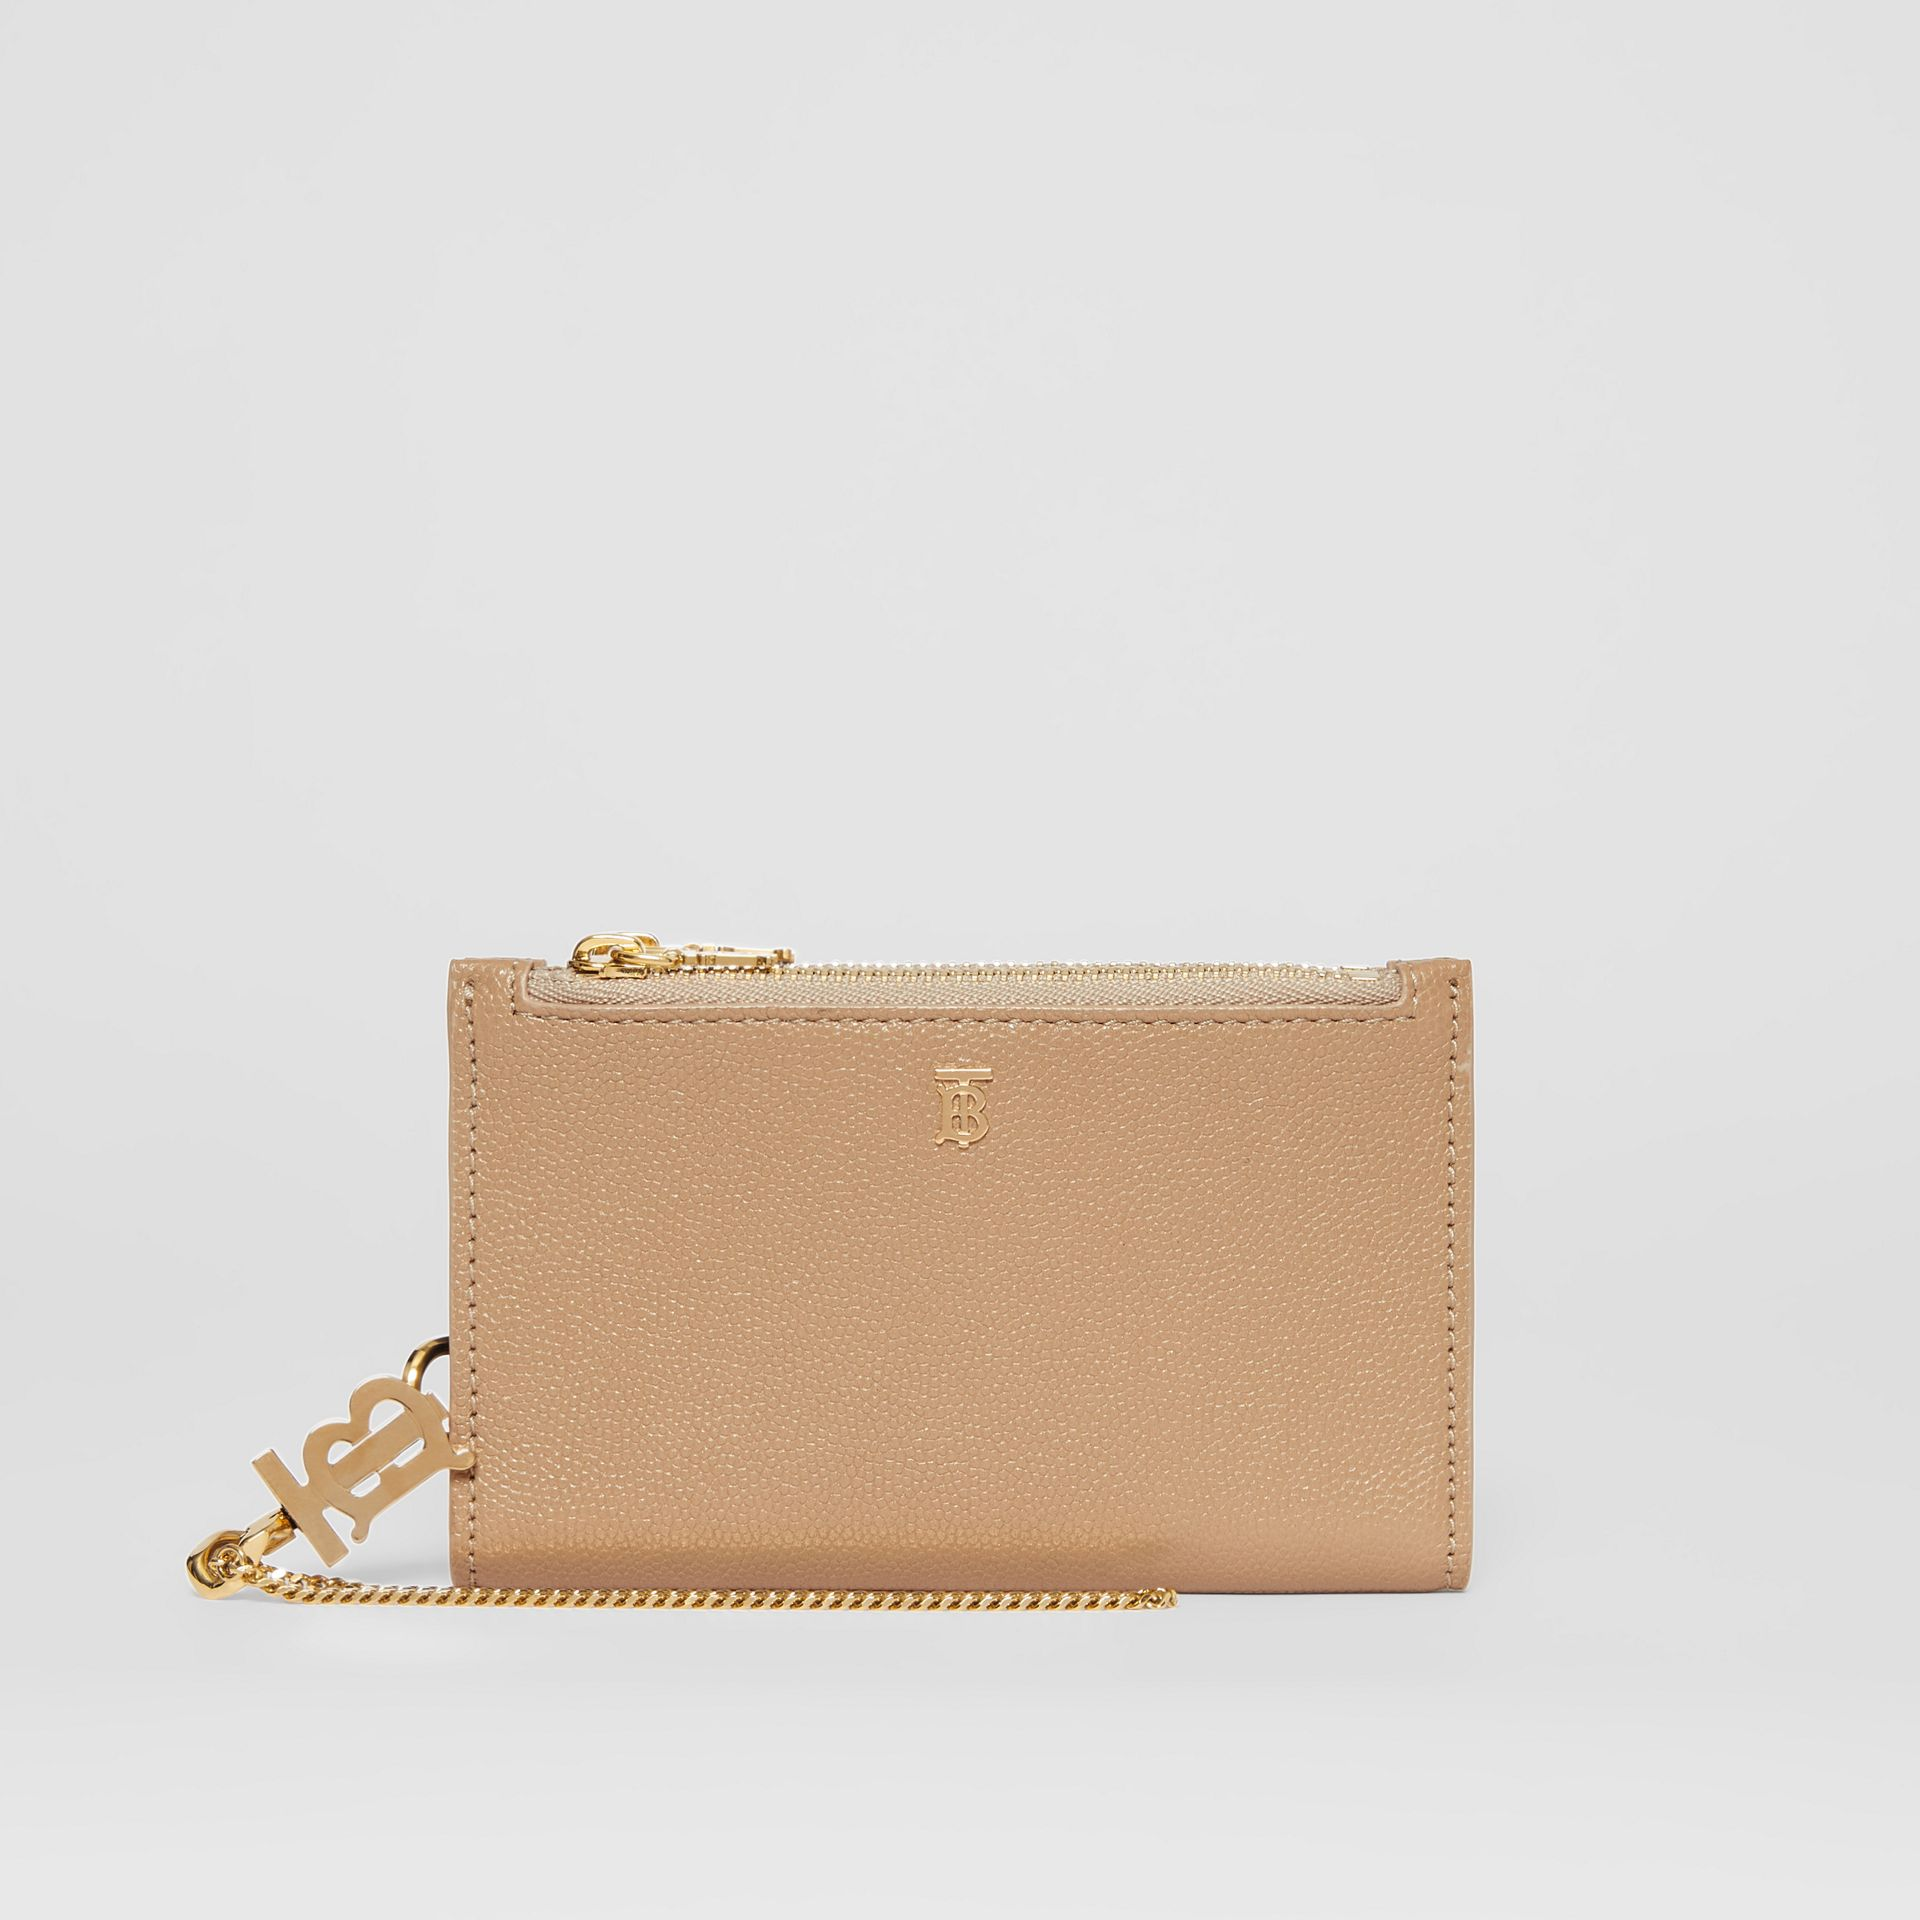 Monogram Motif Grainy Leather Wallet with Detachable Strap in Archive Beige - Women | Burberry Canada - gallery image 0